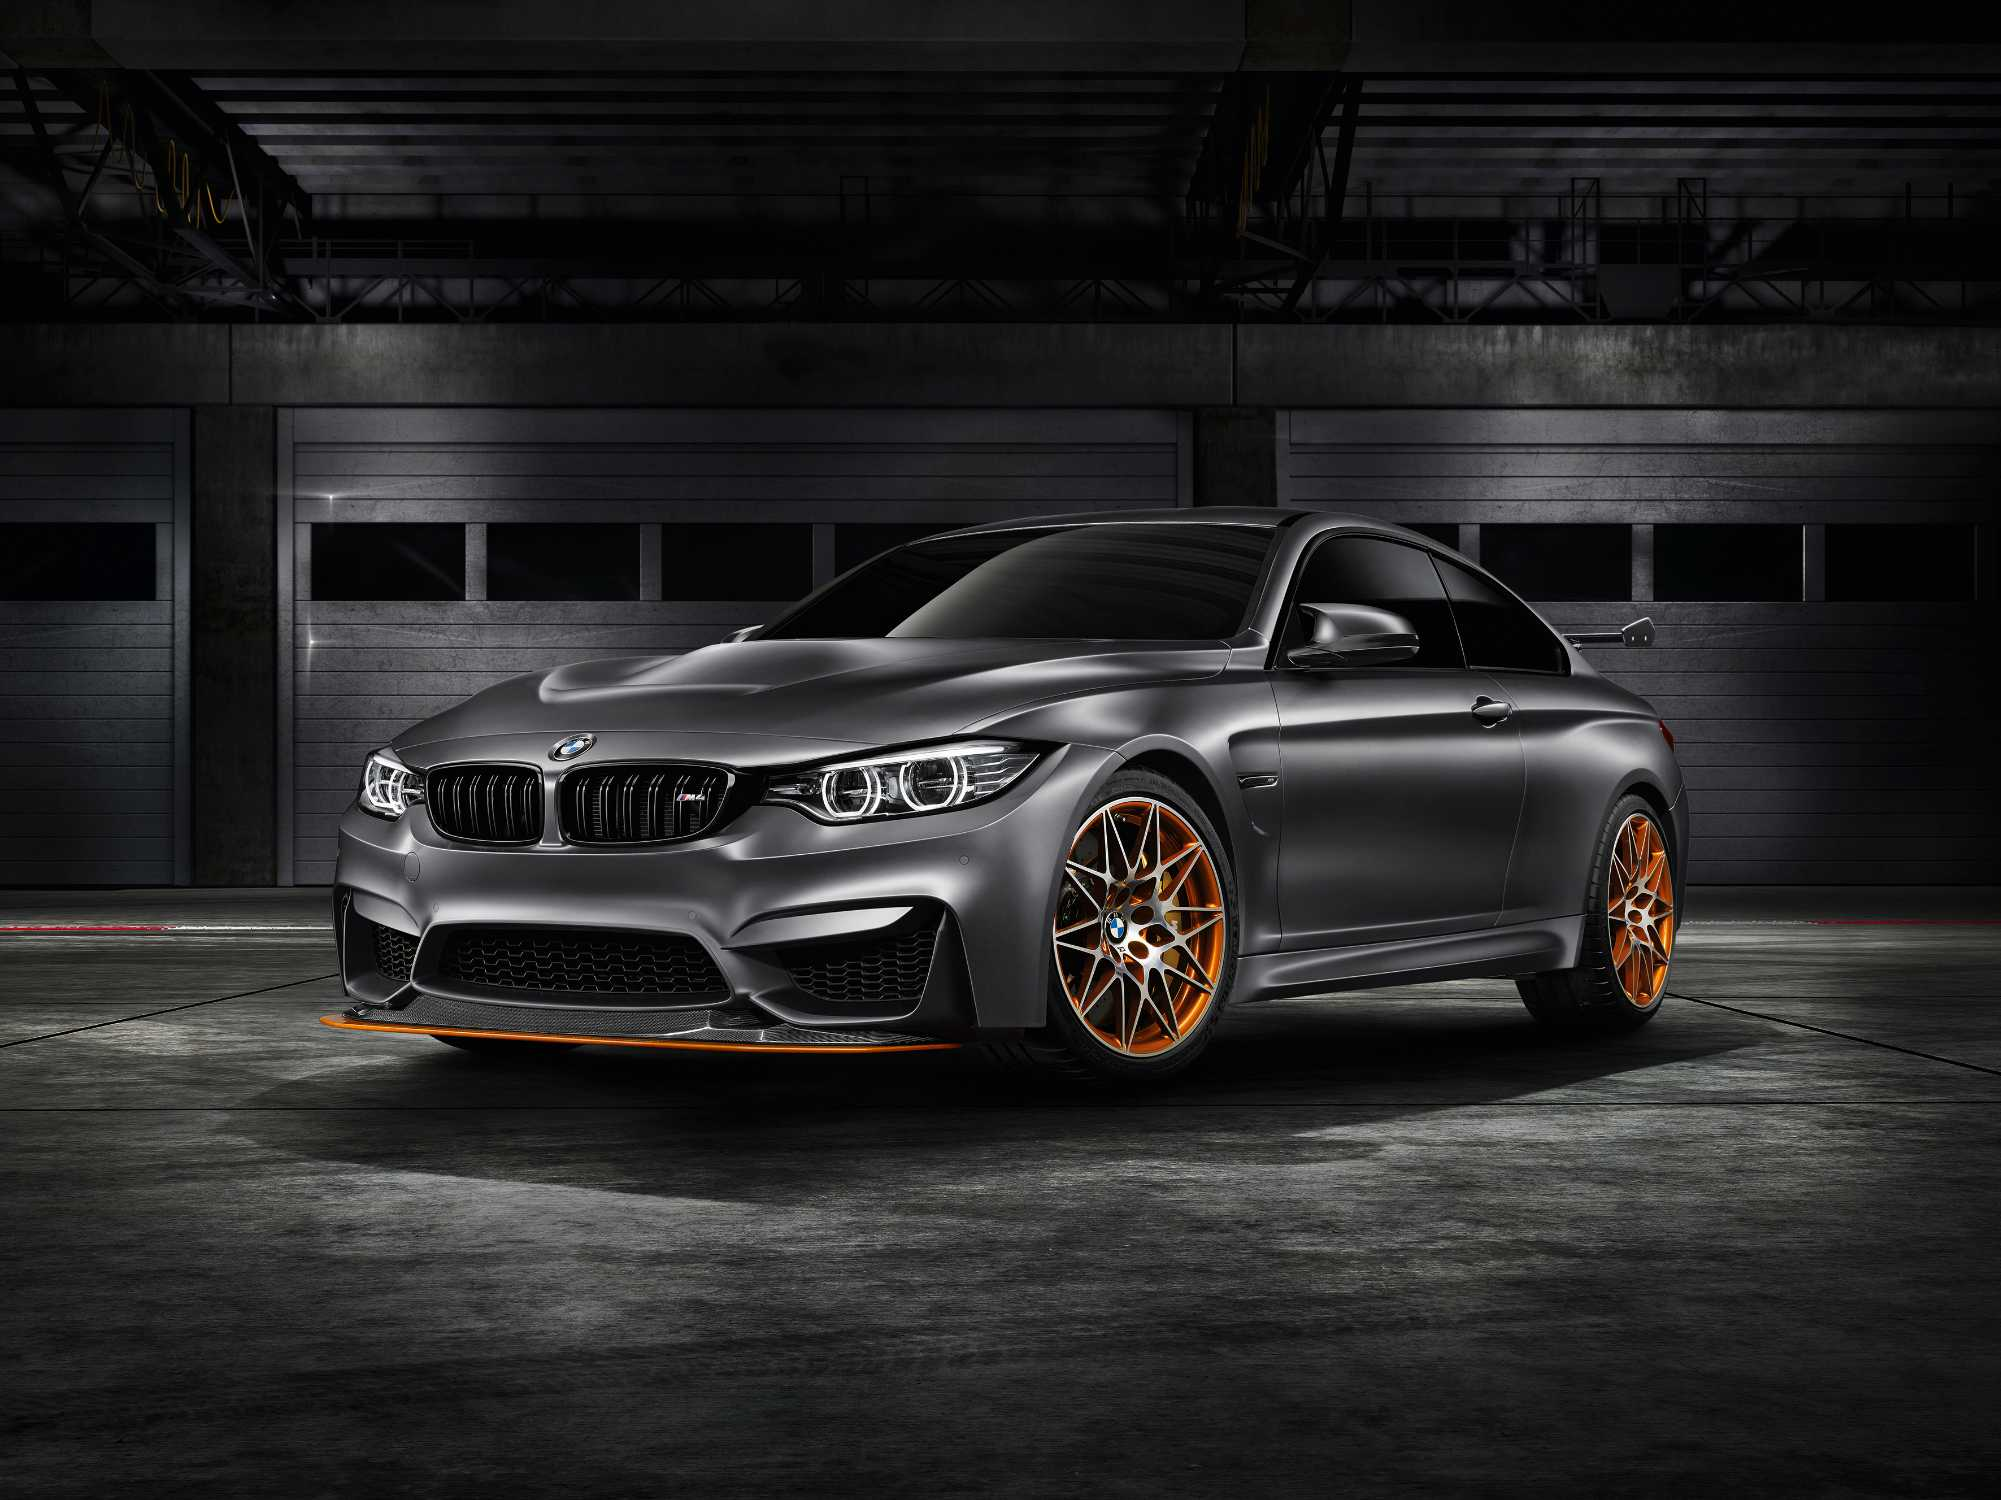 BMW Concept M4 GTS to be Premiered During Monterey Car Week.